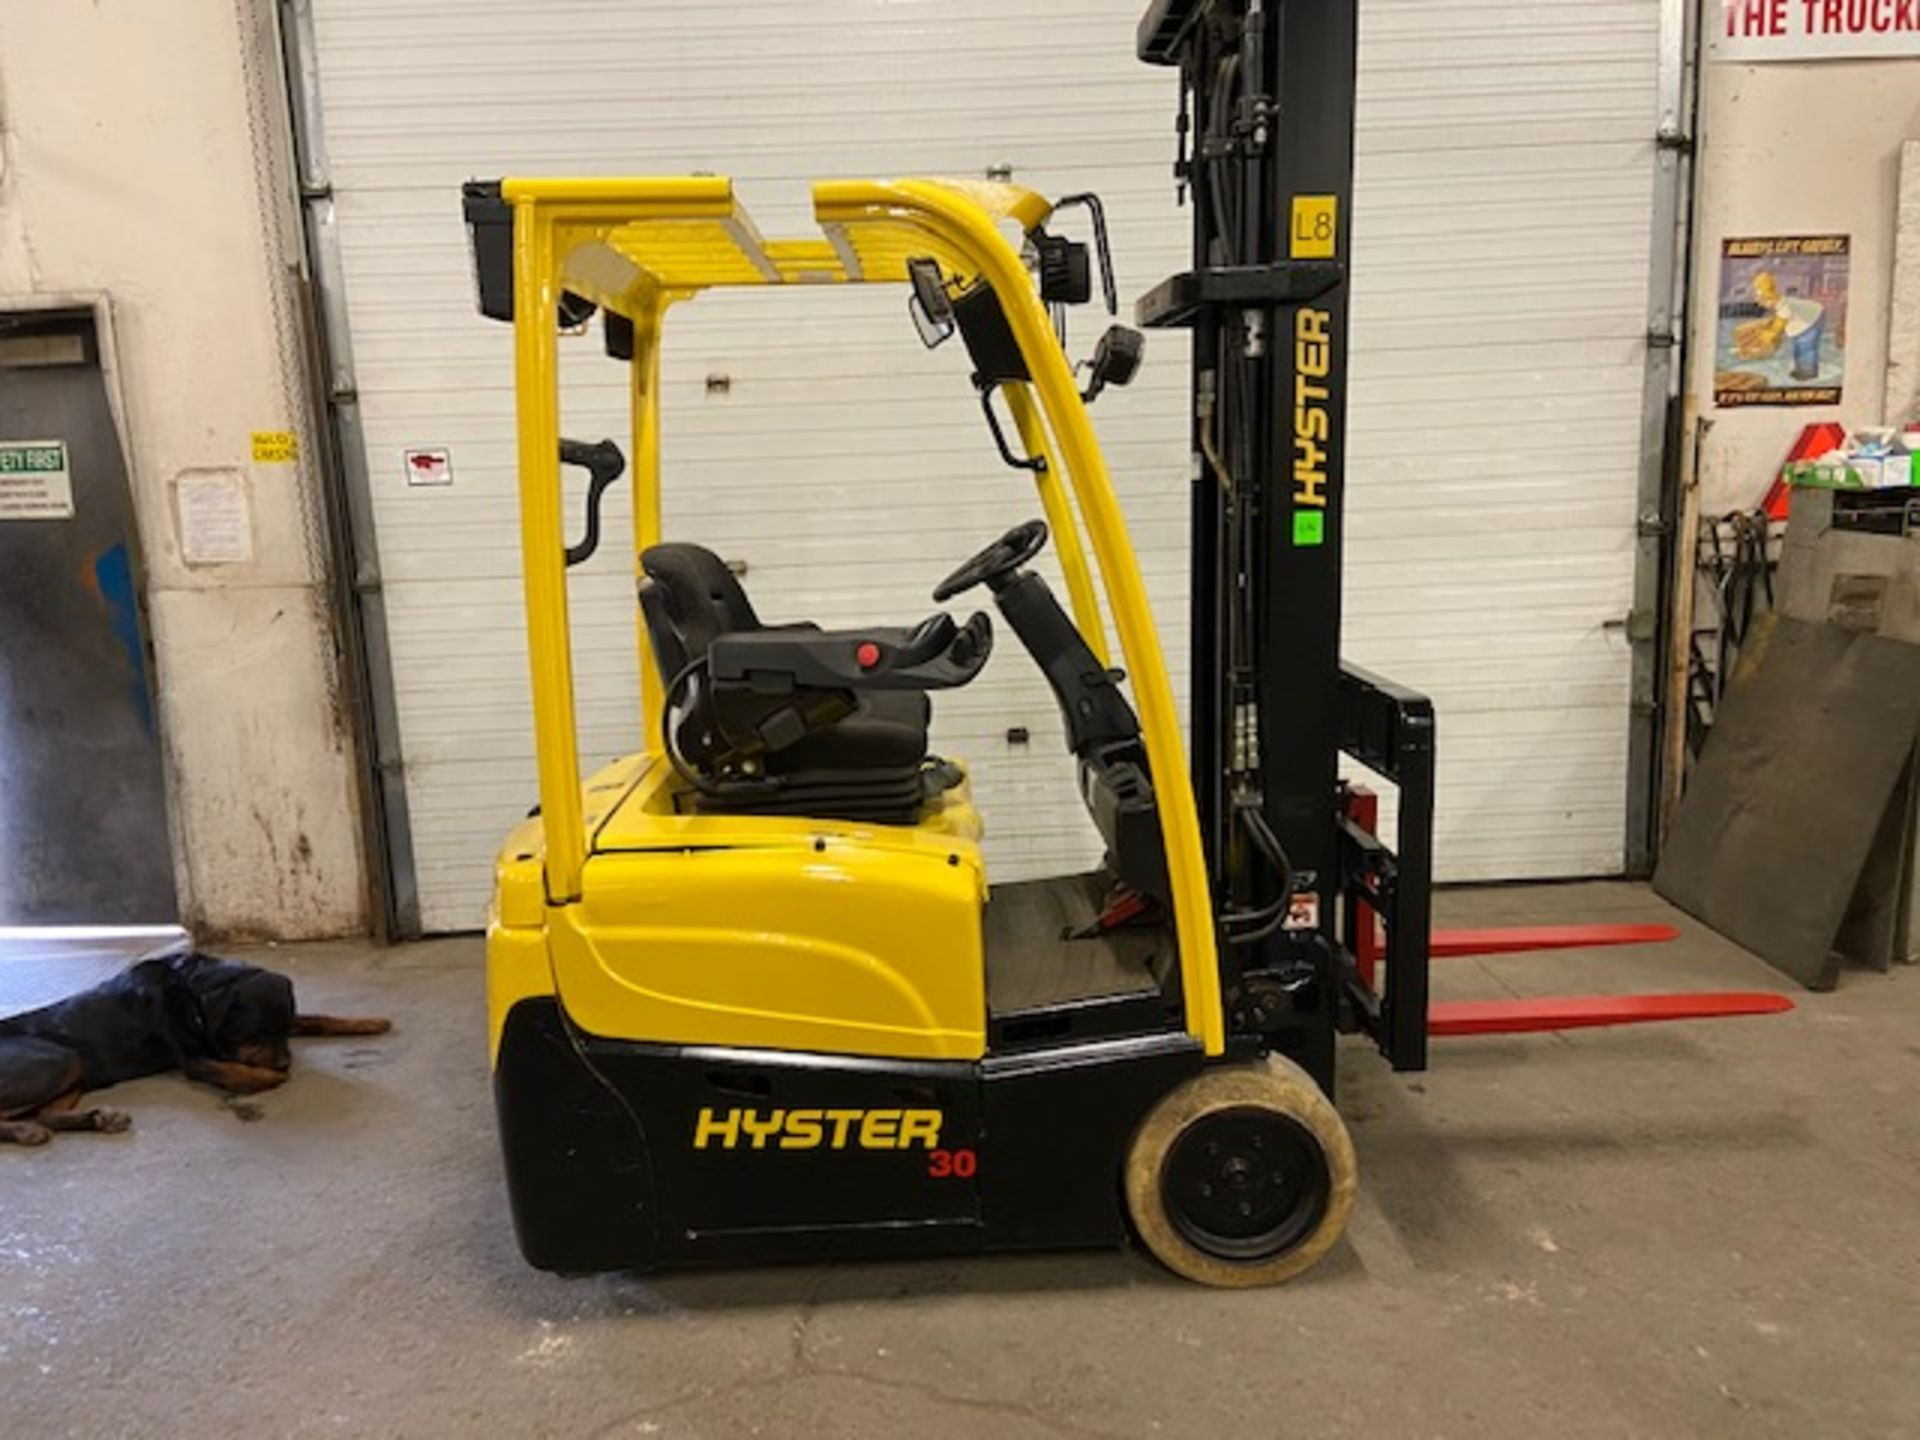 FREE CUSTOMS - 2013 Hyster 3000lbs Capacity 3-wheel Forklift Electric with 3-stage mast with